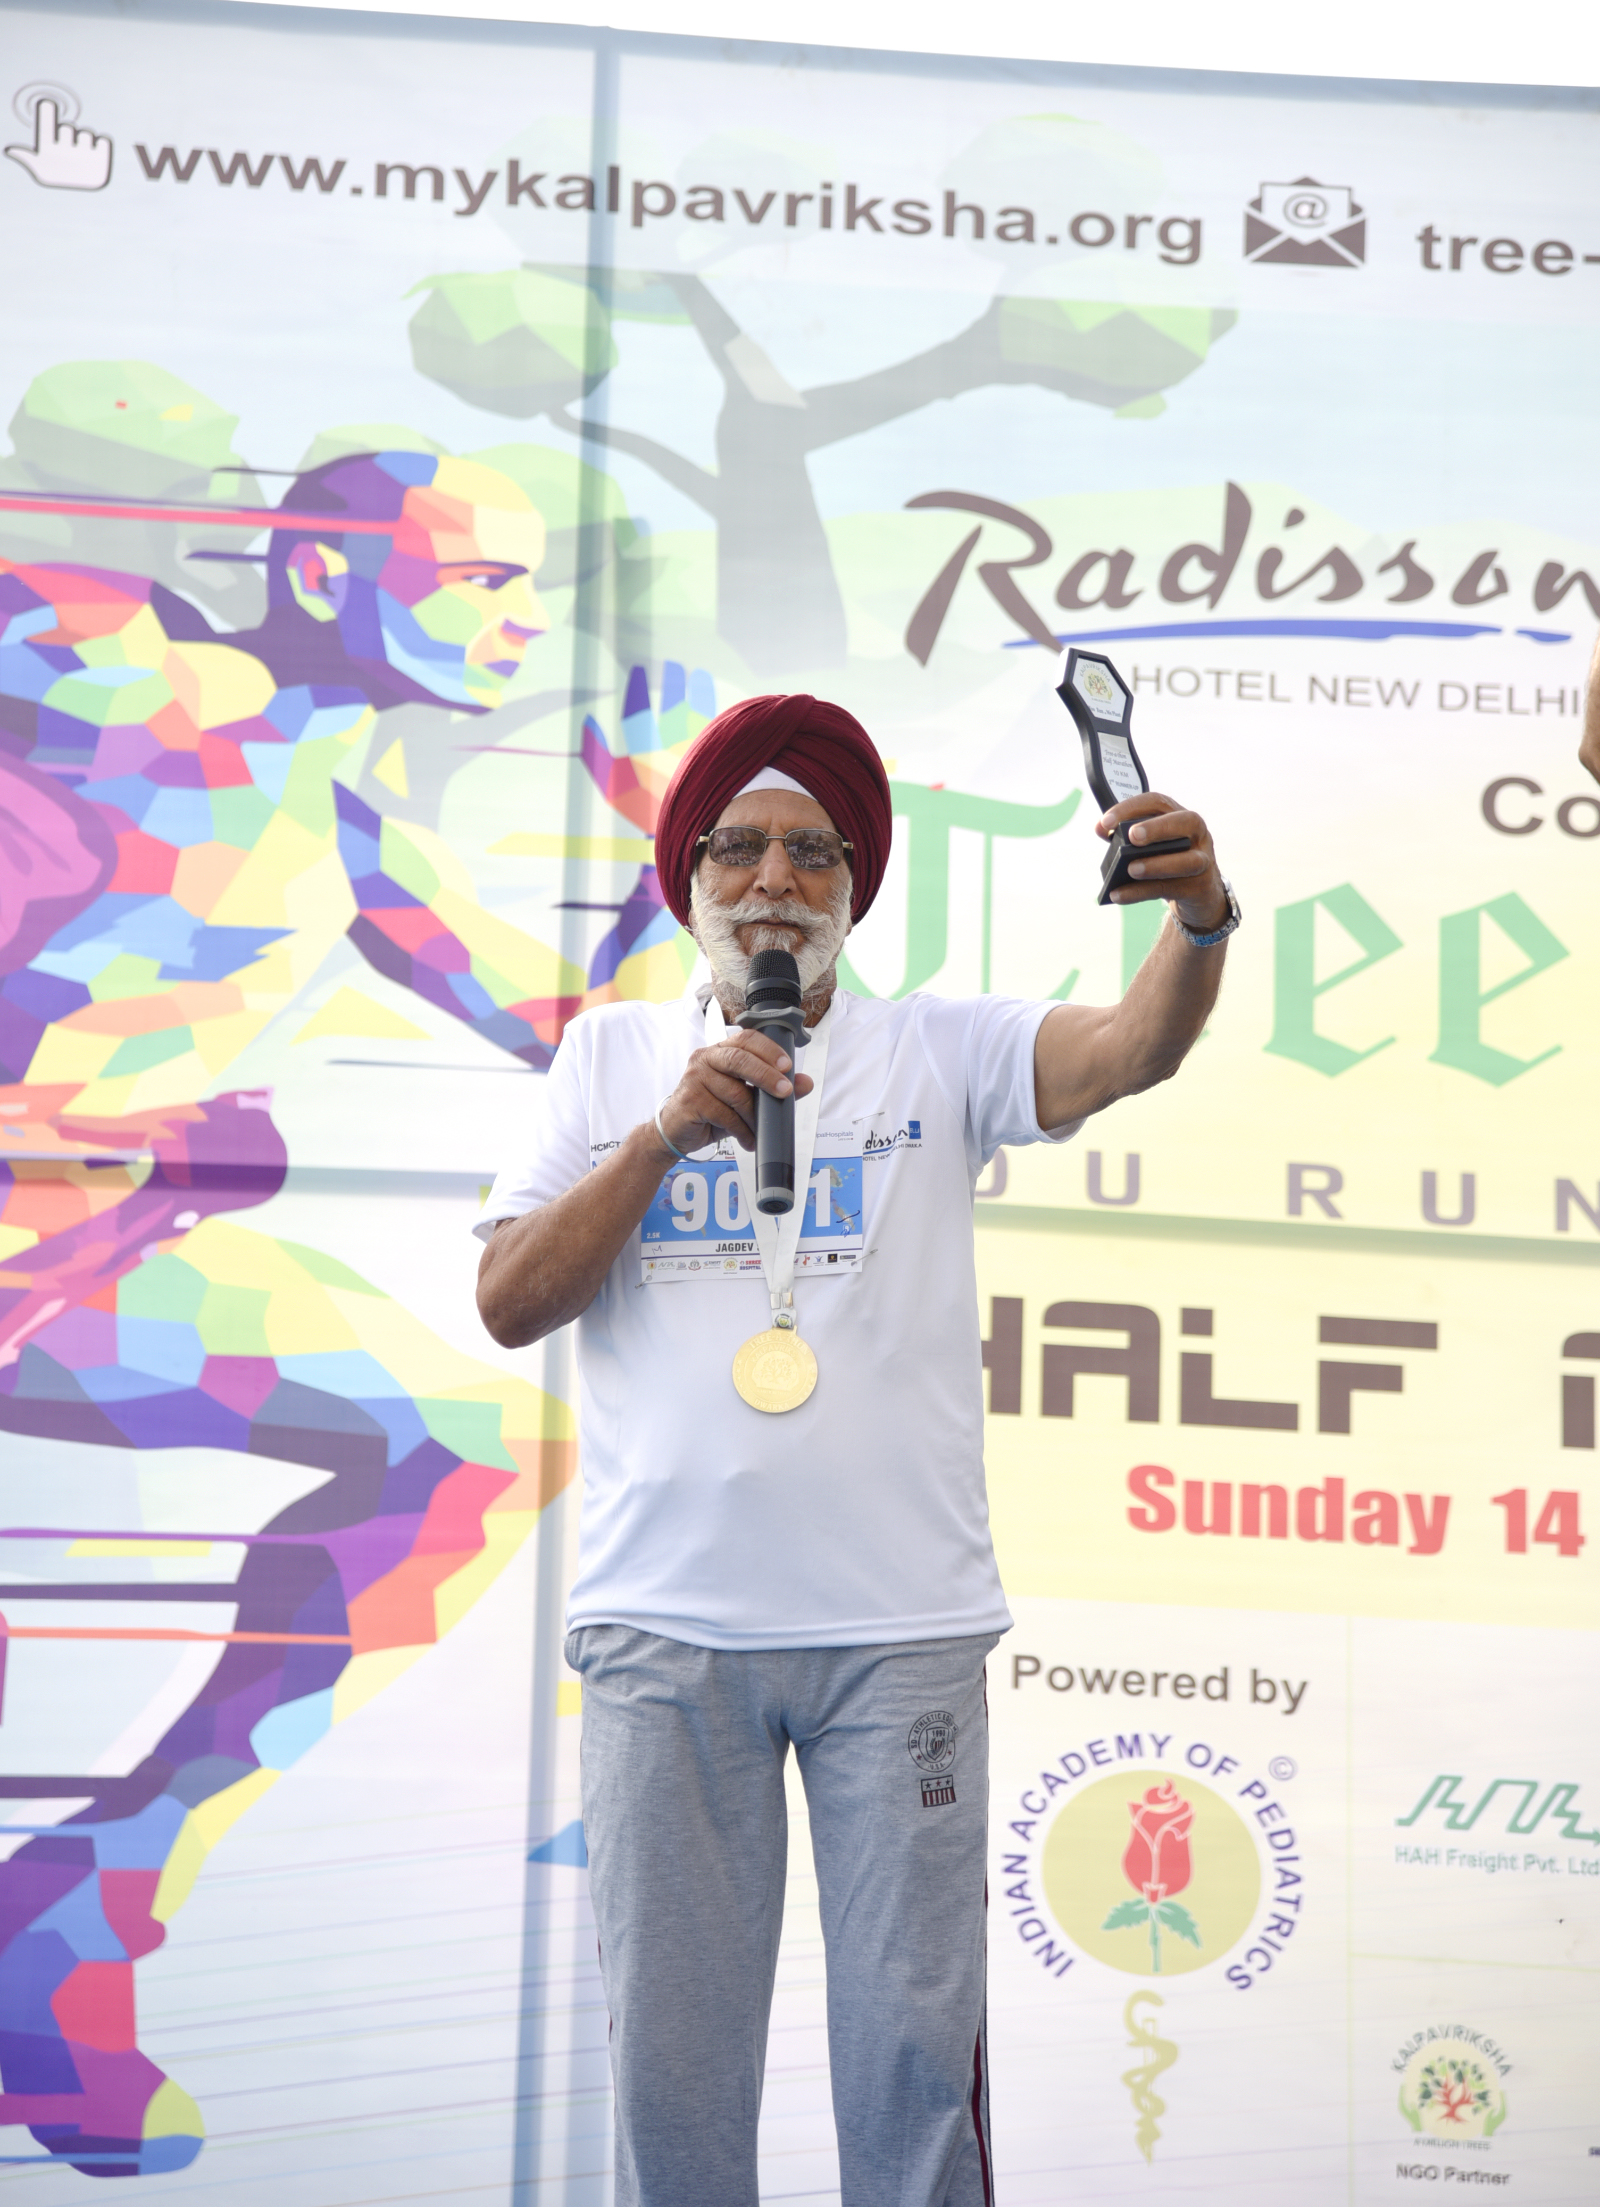 81 Year Old Man participated in Marathon-